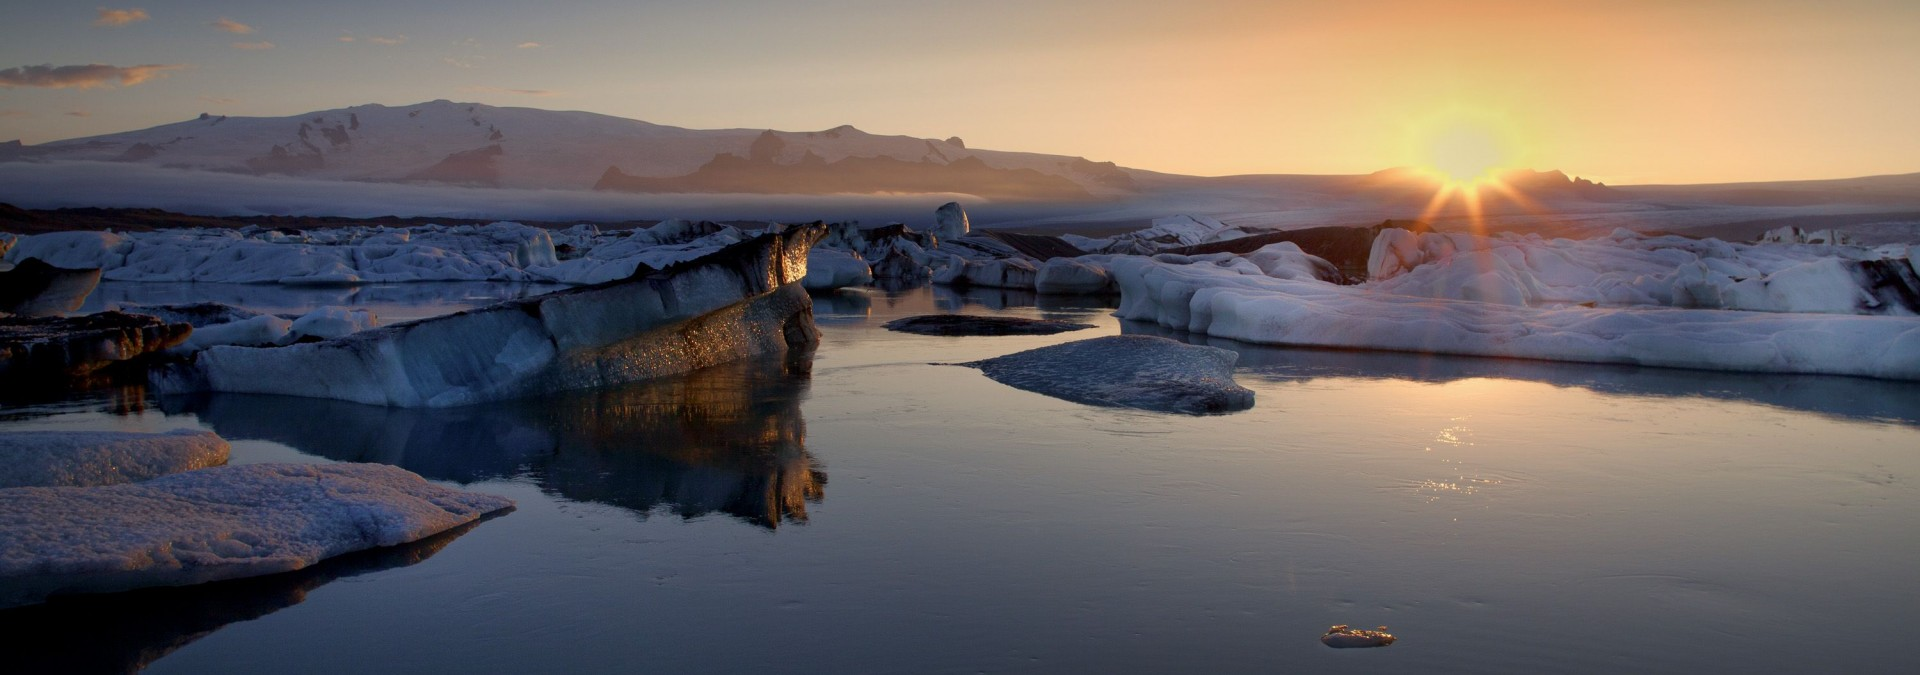 Sunset, South Shore, Iceland, Credit Iceland Pro Travel